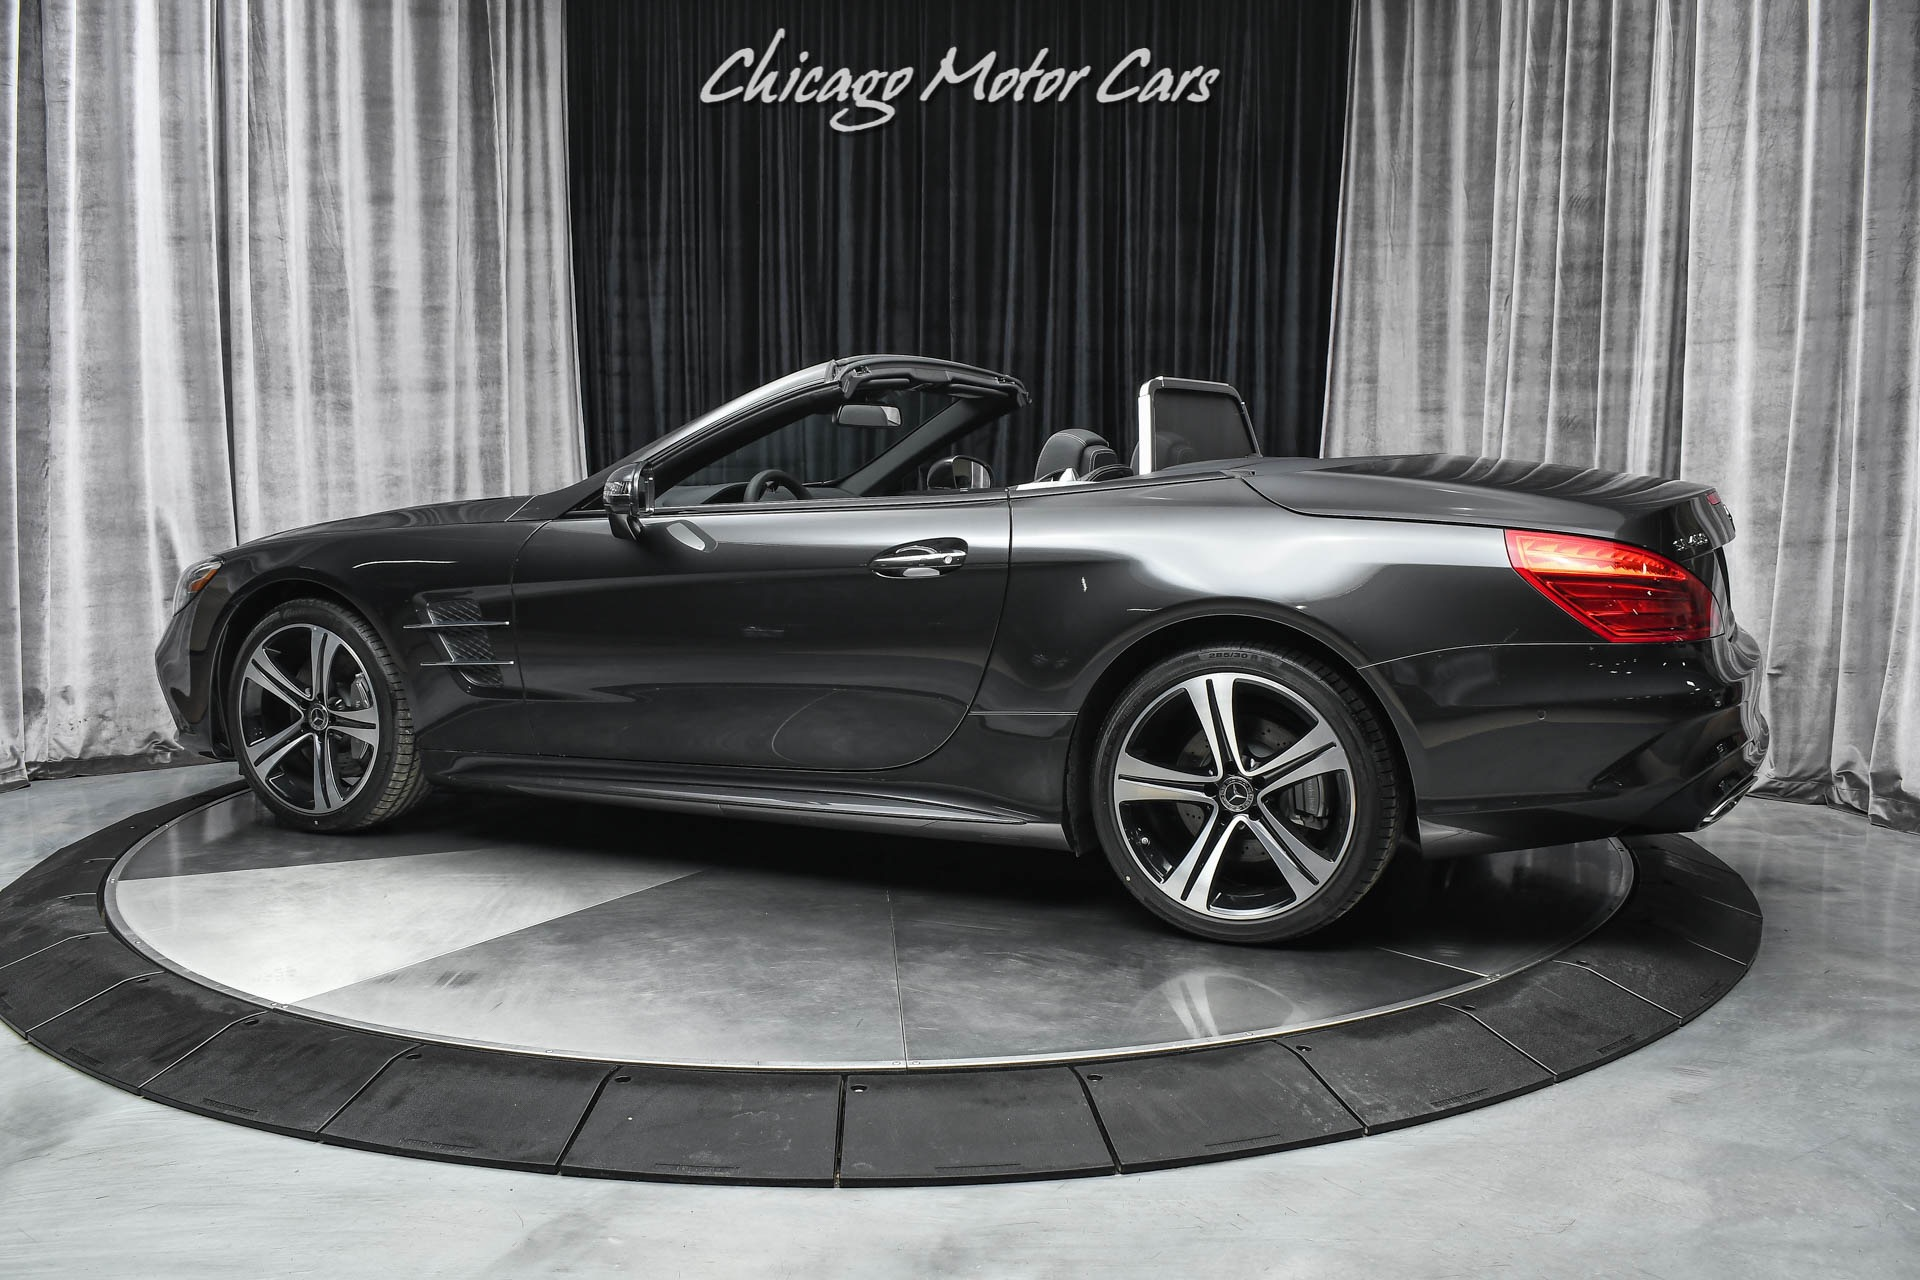 Used-2020-Mercedes-Benz-SL450-Premium-Package-Intelligent-Drive-Package-LOW-Miles